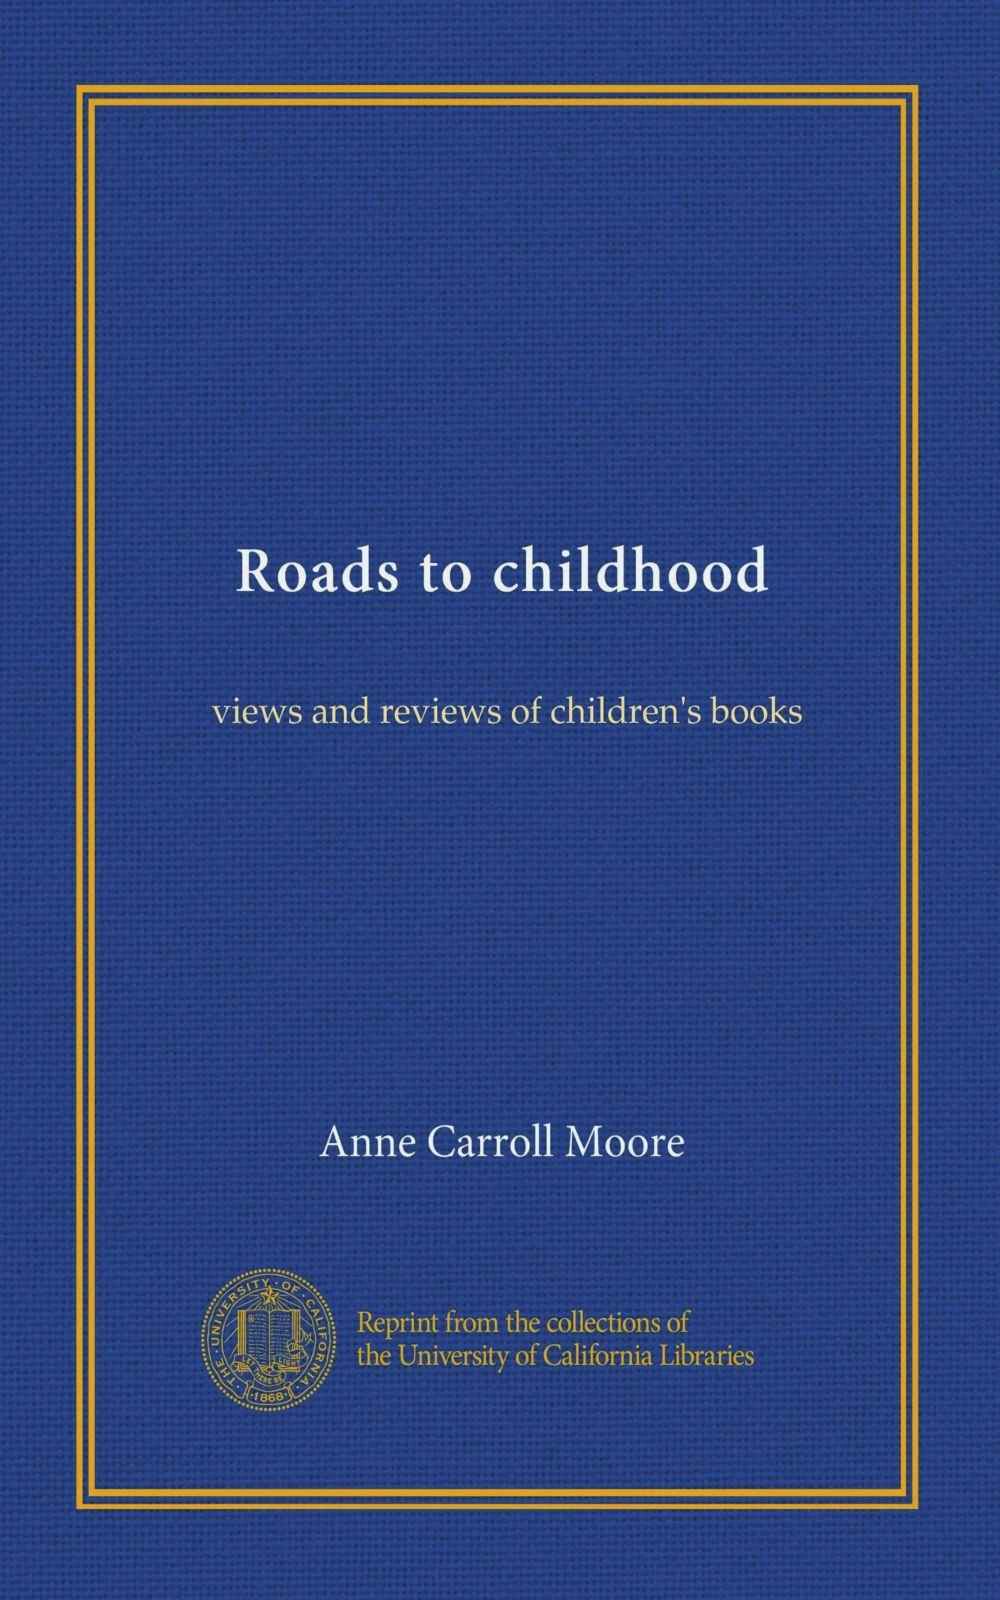 Download Roads to childhood: views and reviews of children's books PDF